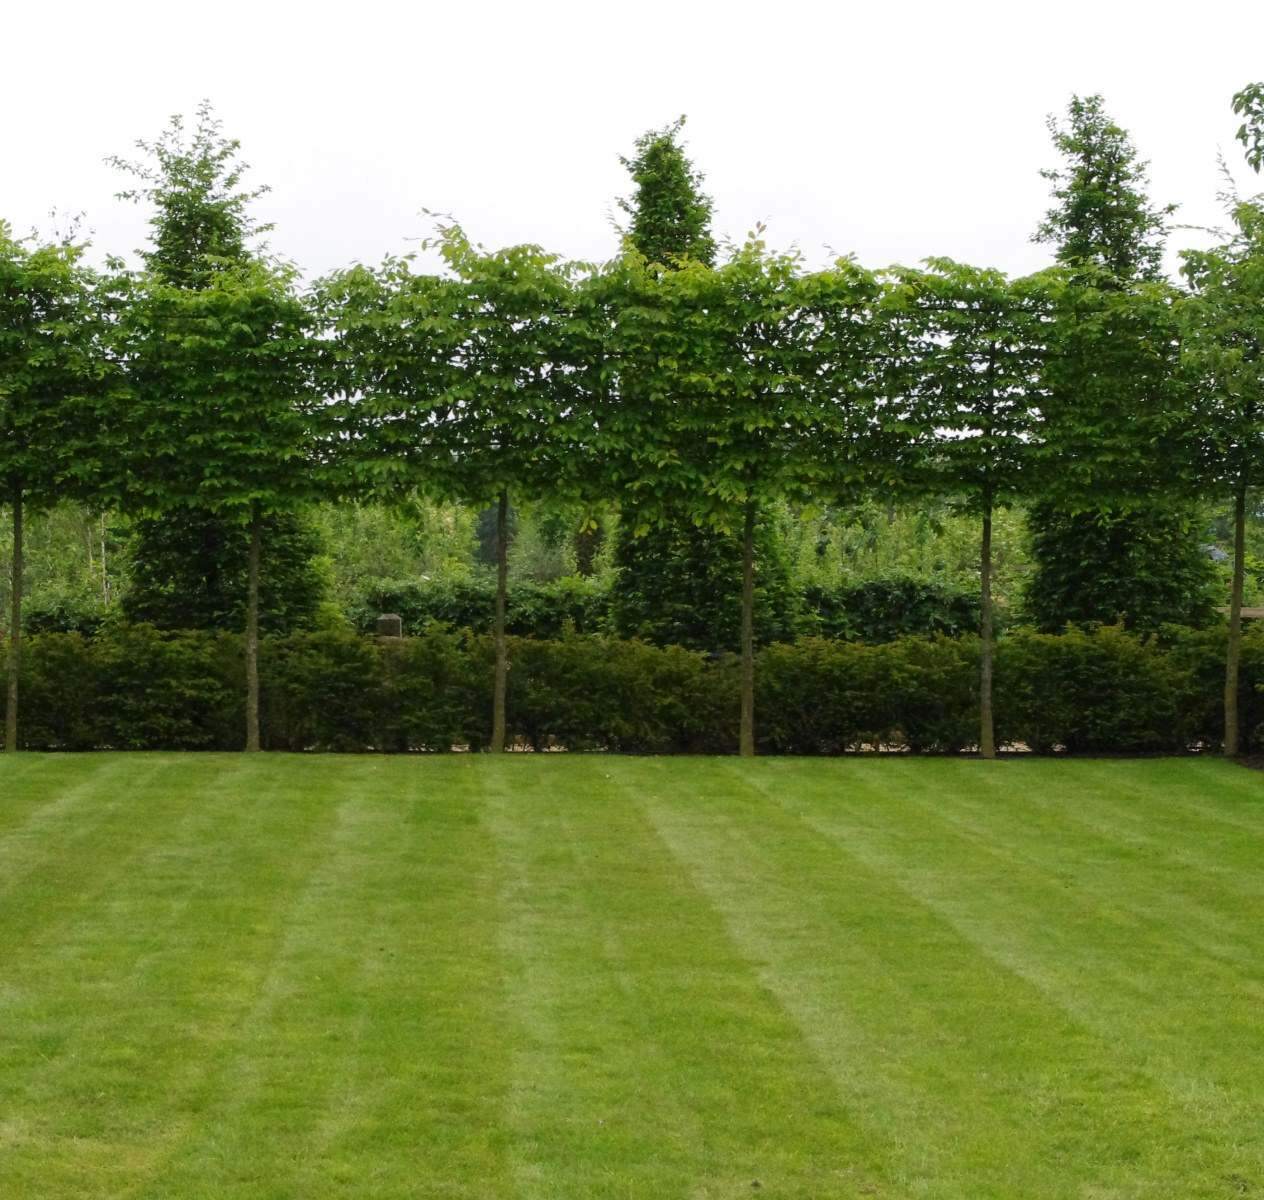 trees_pleached_hedges_topiary-SCREENING_green_wall_living_screen_wall_